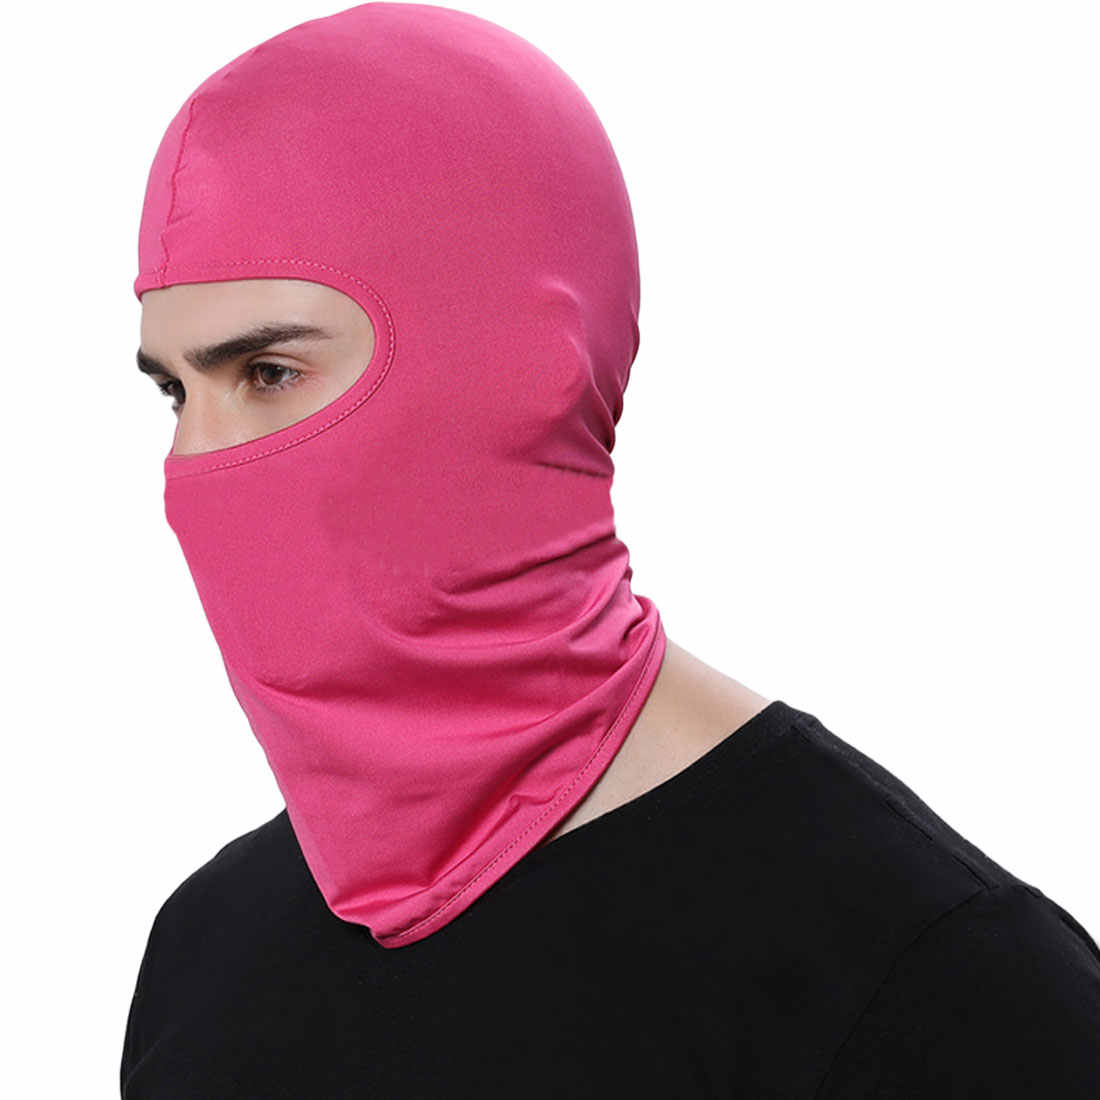 Outdoor Sports Neck Motorcycle Face Mask Winter Warm Ski Snowboard Wind Cap  Police Cycling Balaclavas Face 9f481082b429